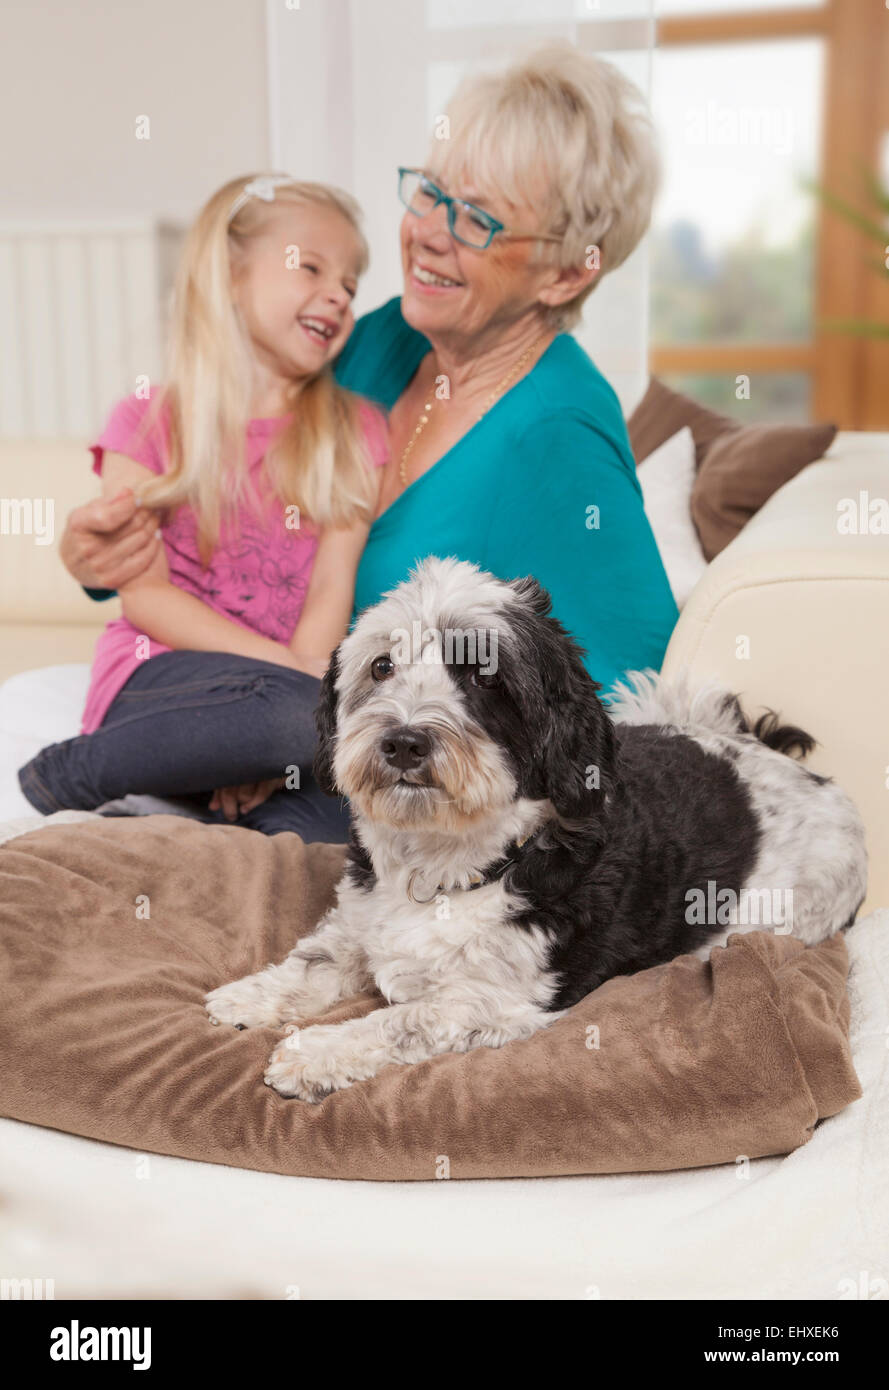 Senior woman with dog and granddaughter laughing in a living room, Bavaria, Germany - Stock Image